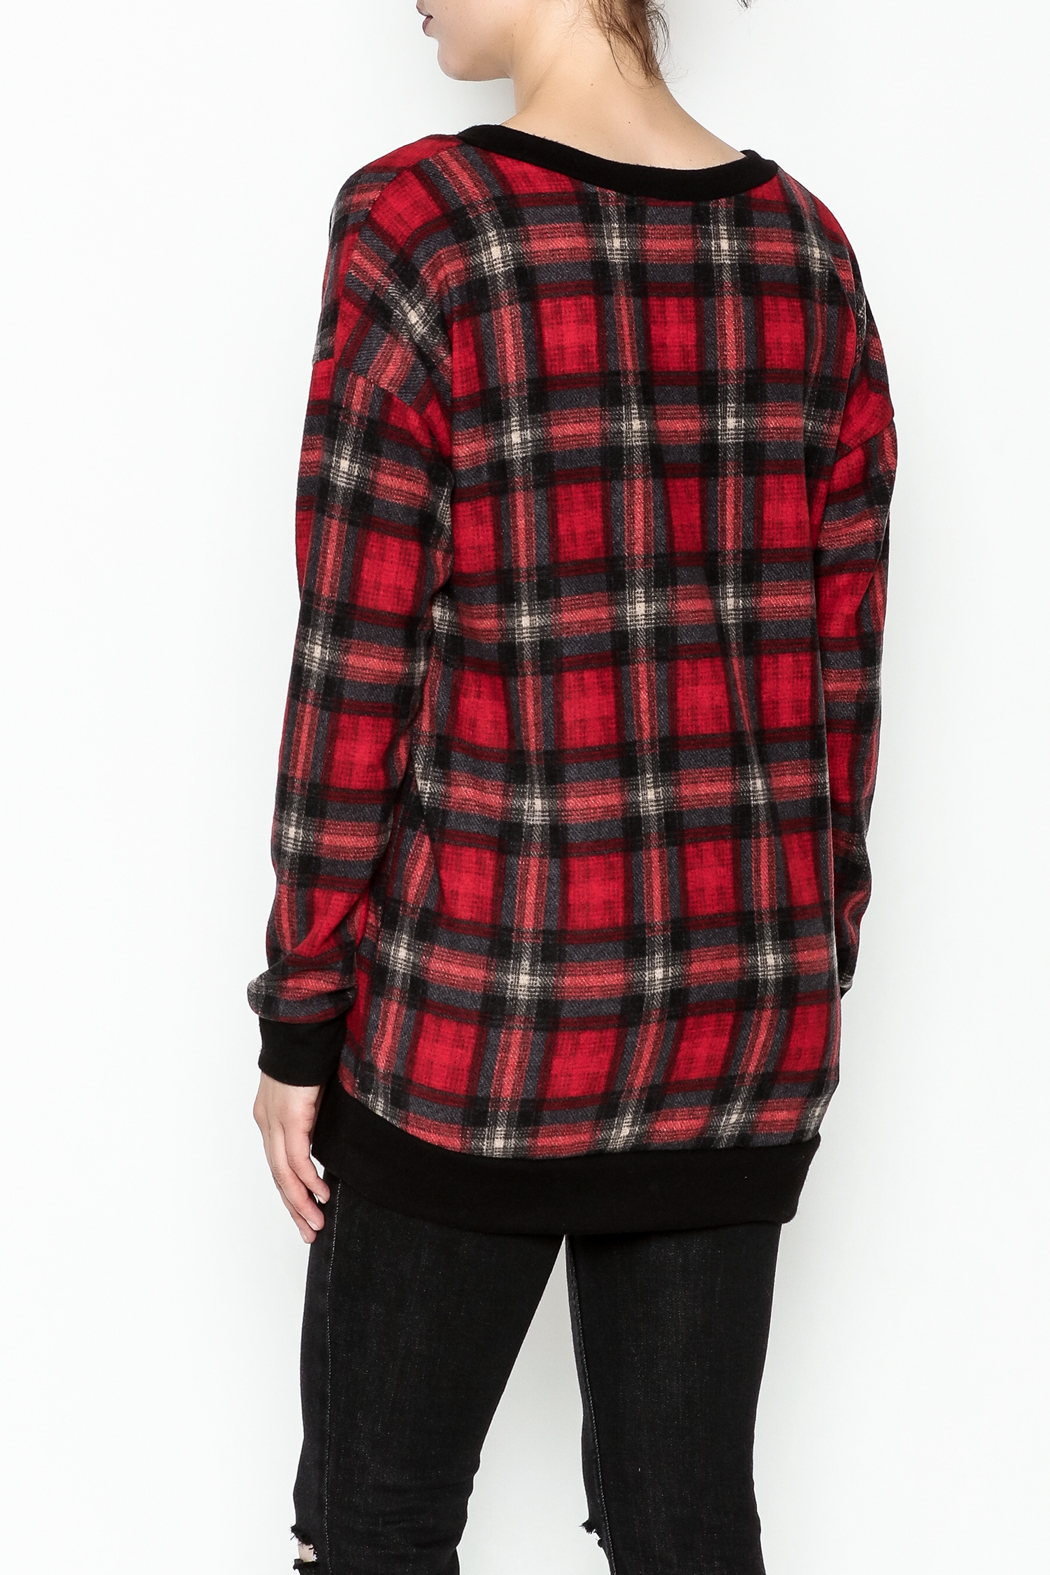 Cherish Plaid Vee Sweatshirt - Back Cropped Image